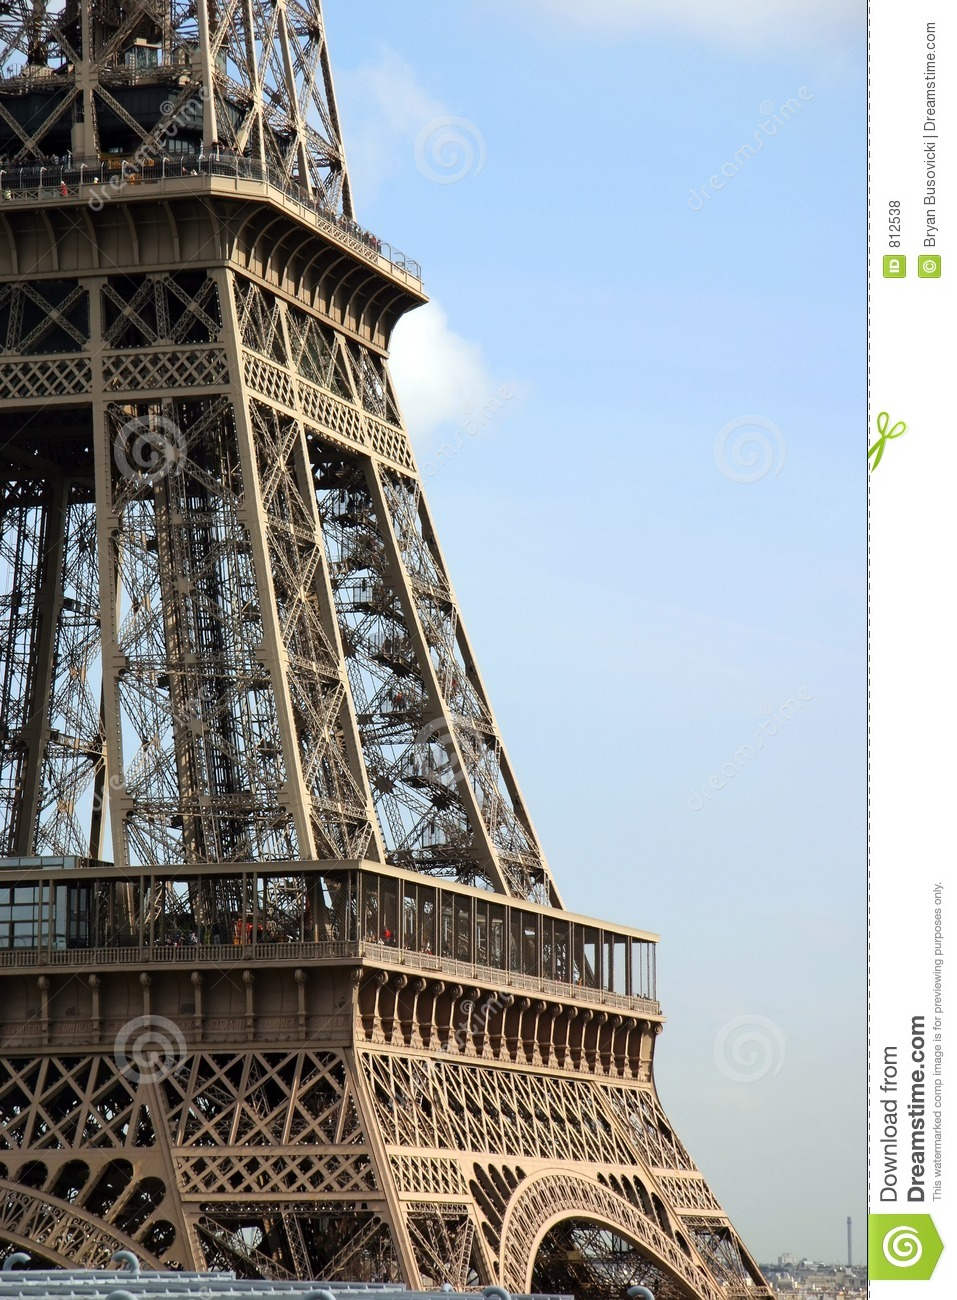 A Close Up Of A 14 Year Old Boy Covered In Snow Stock: Eiffel Tower Close Up Stock Photo. Image Of Gustavo